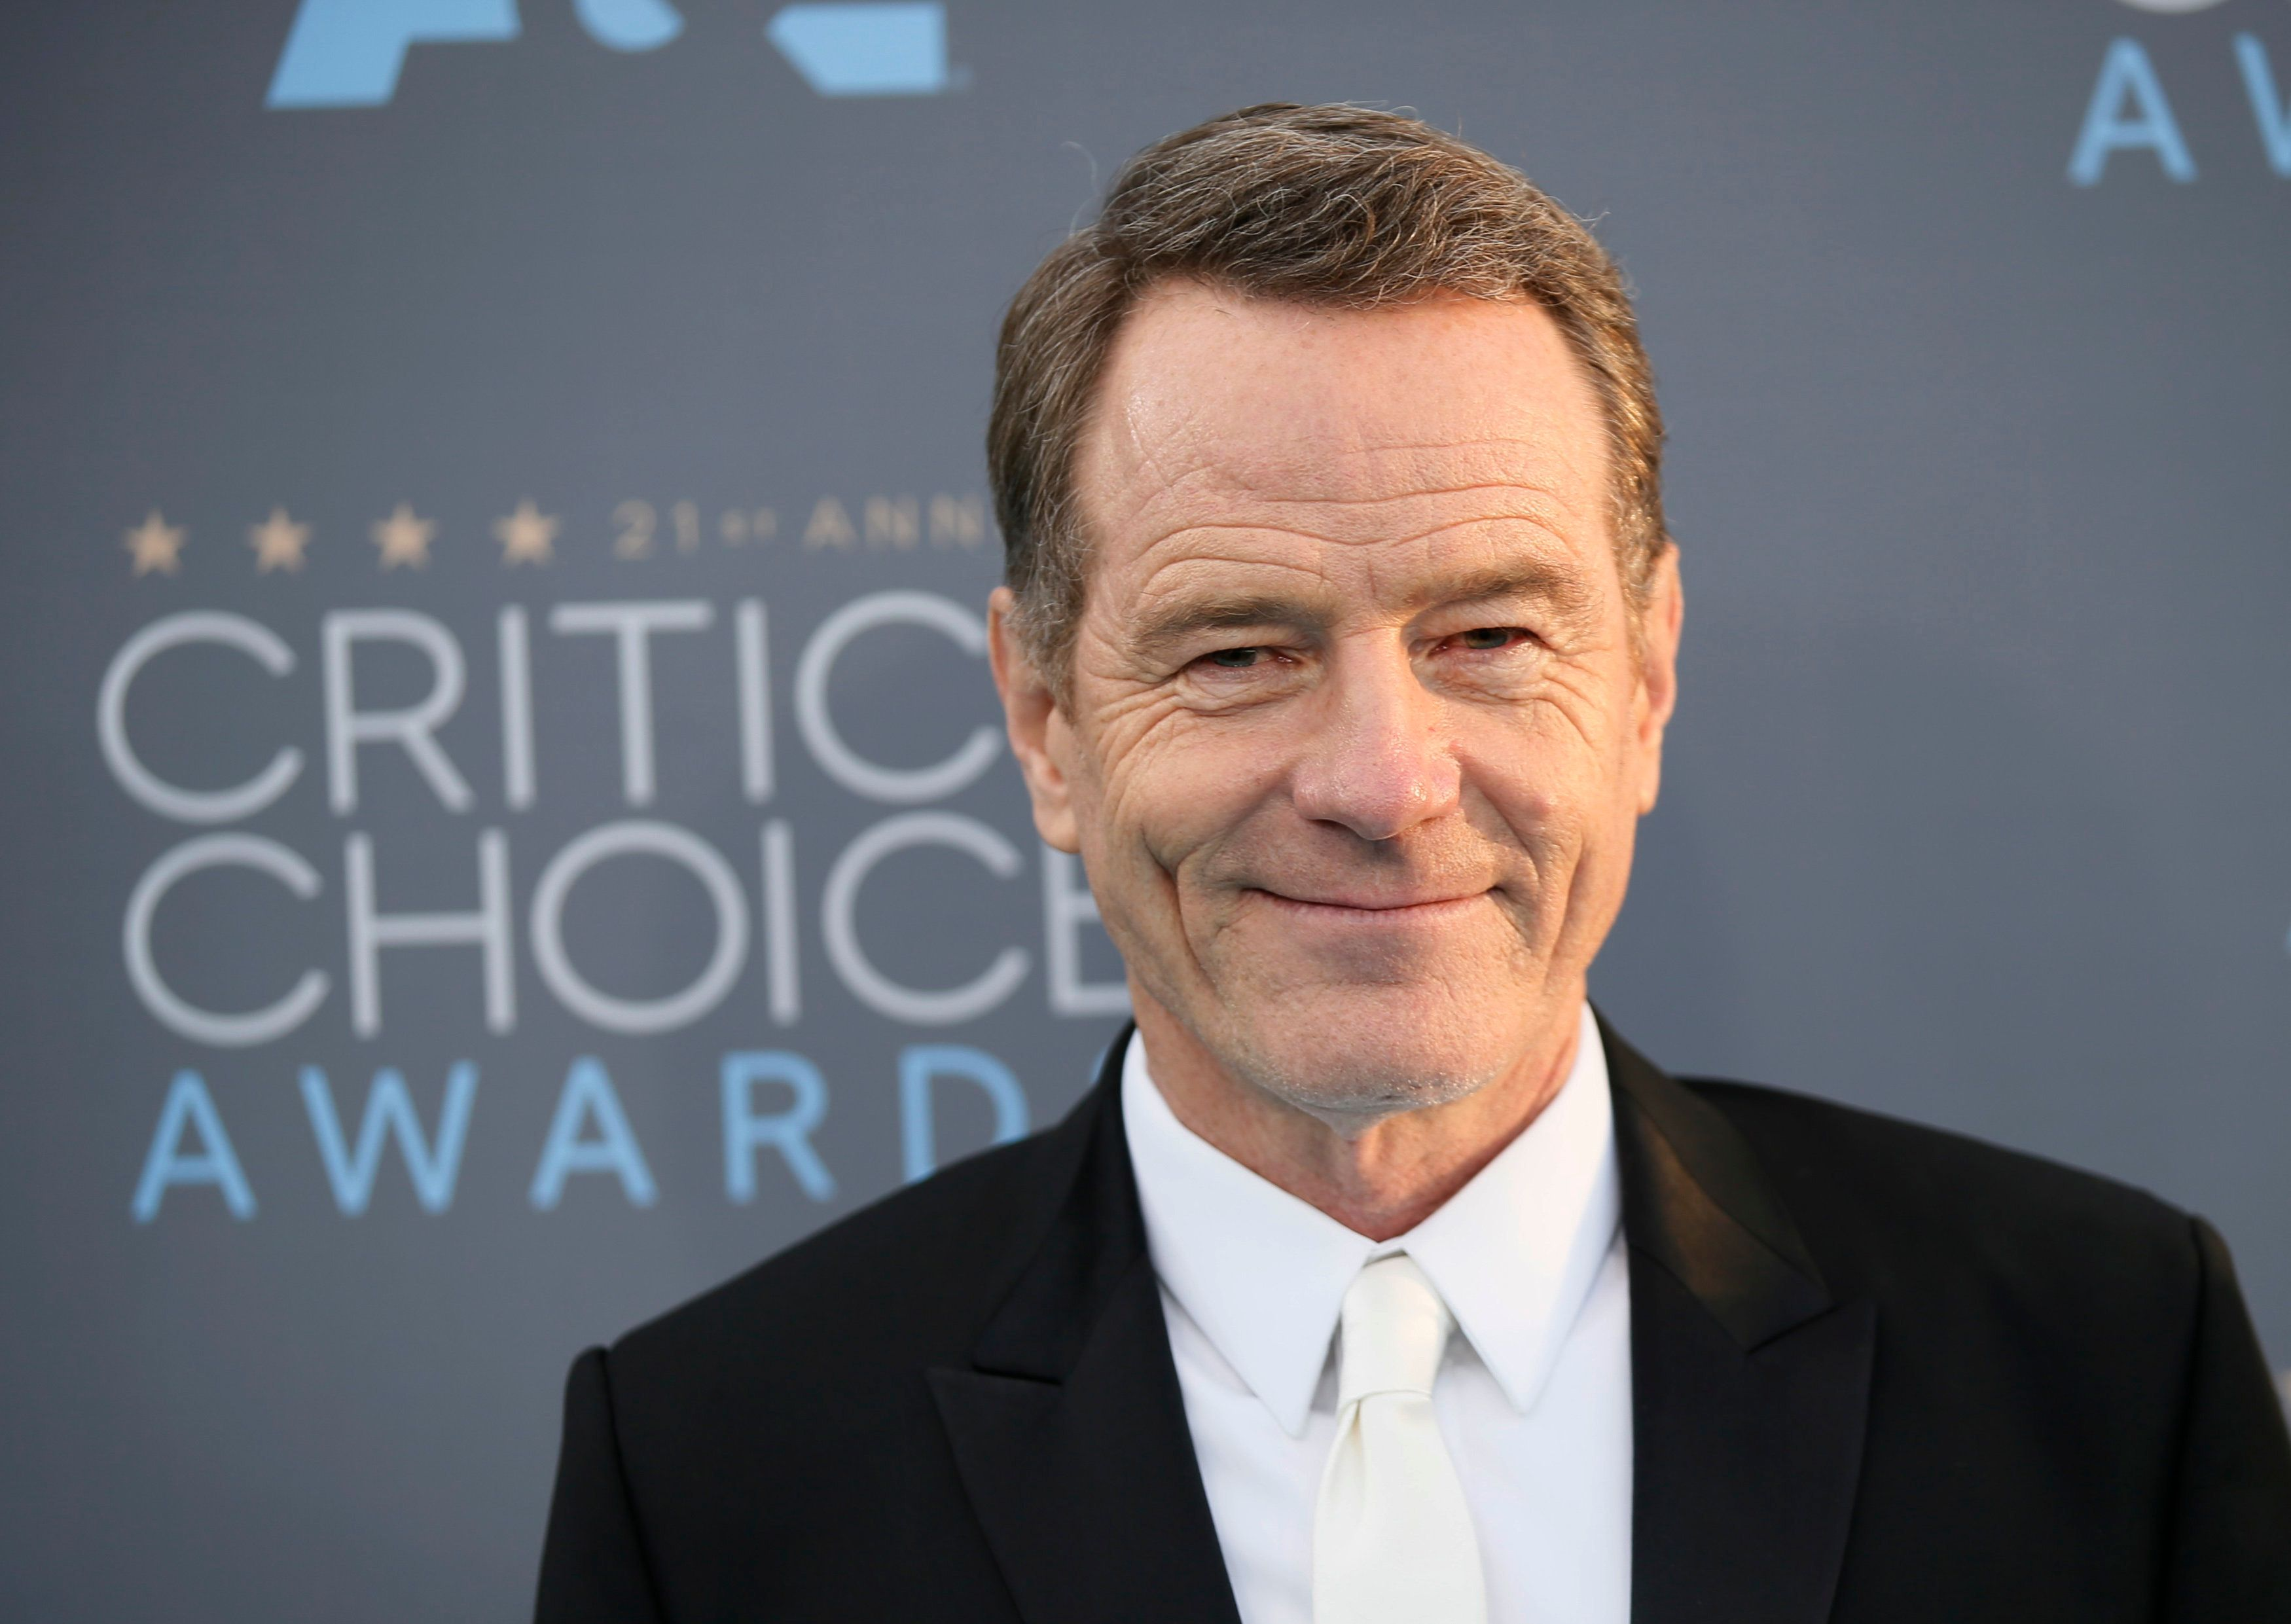 Actor Bryan Cranston arrives at the 21st Annual Critics' Choice Awards in Santa Monica, California January 17, 2016.  REUTERS/Danny Moloshok